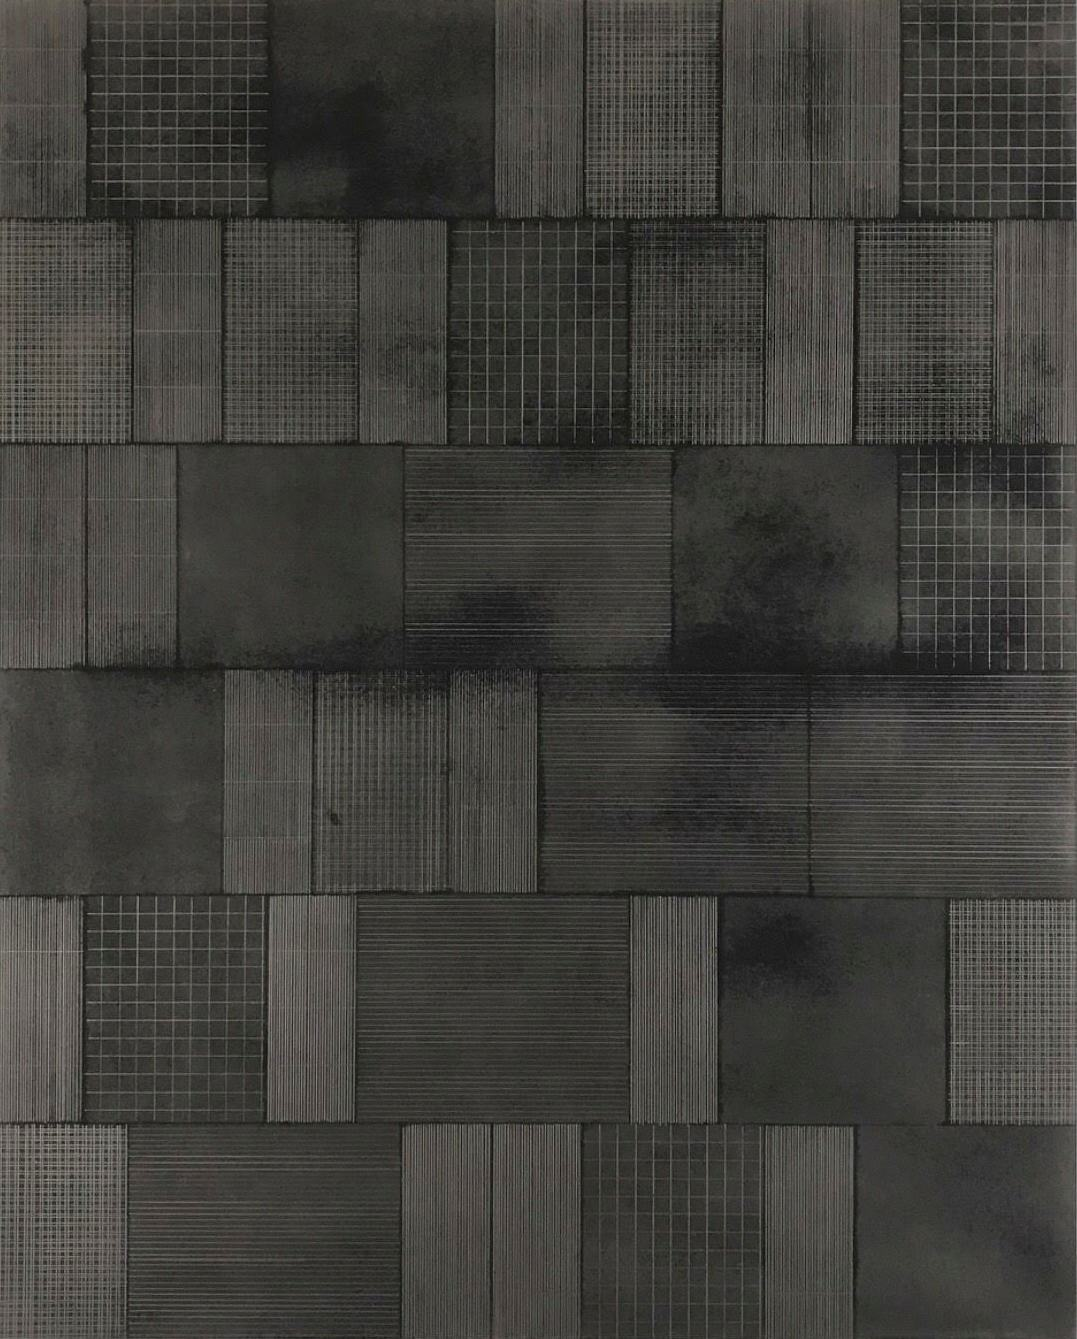 Untitled 3  - 30 x 24 - graphite on paper on panel